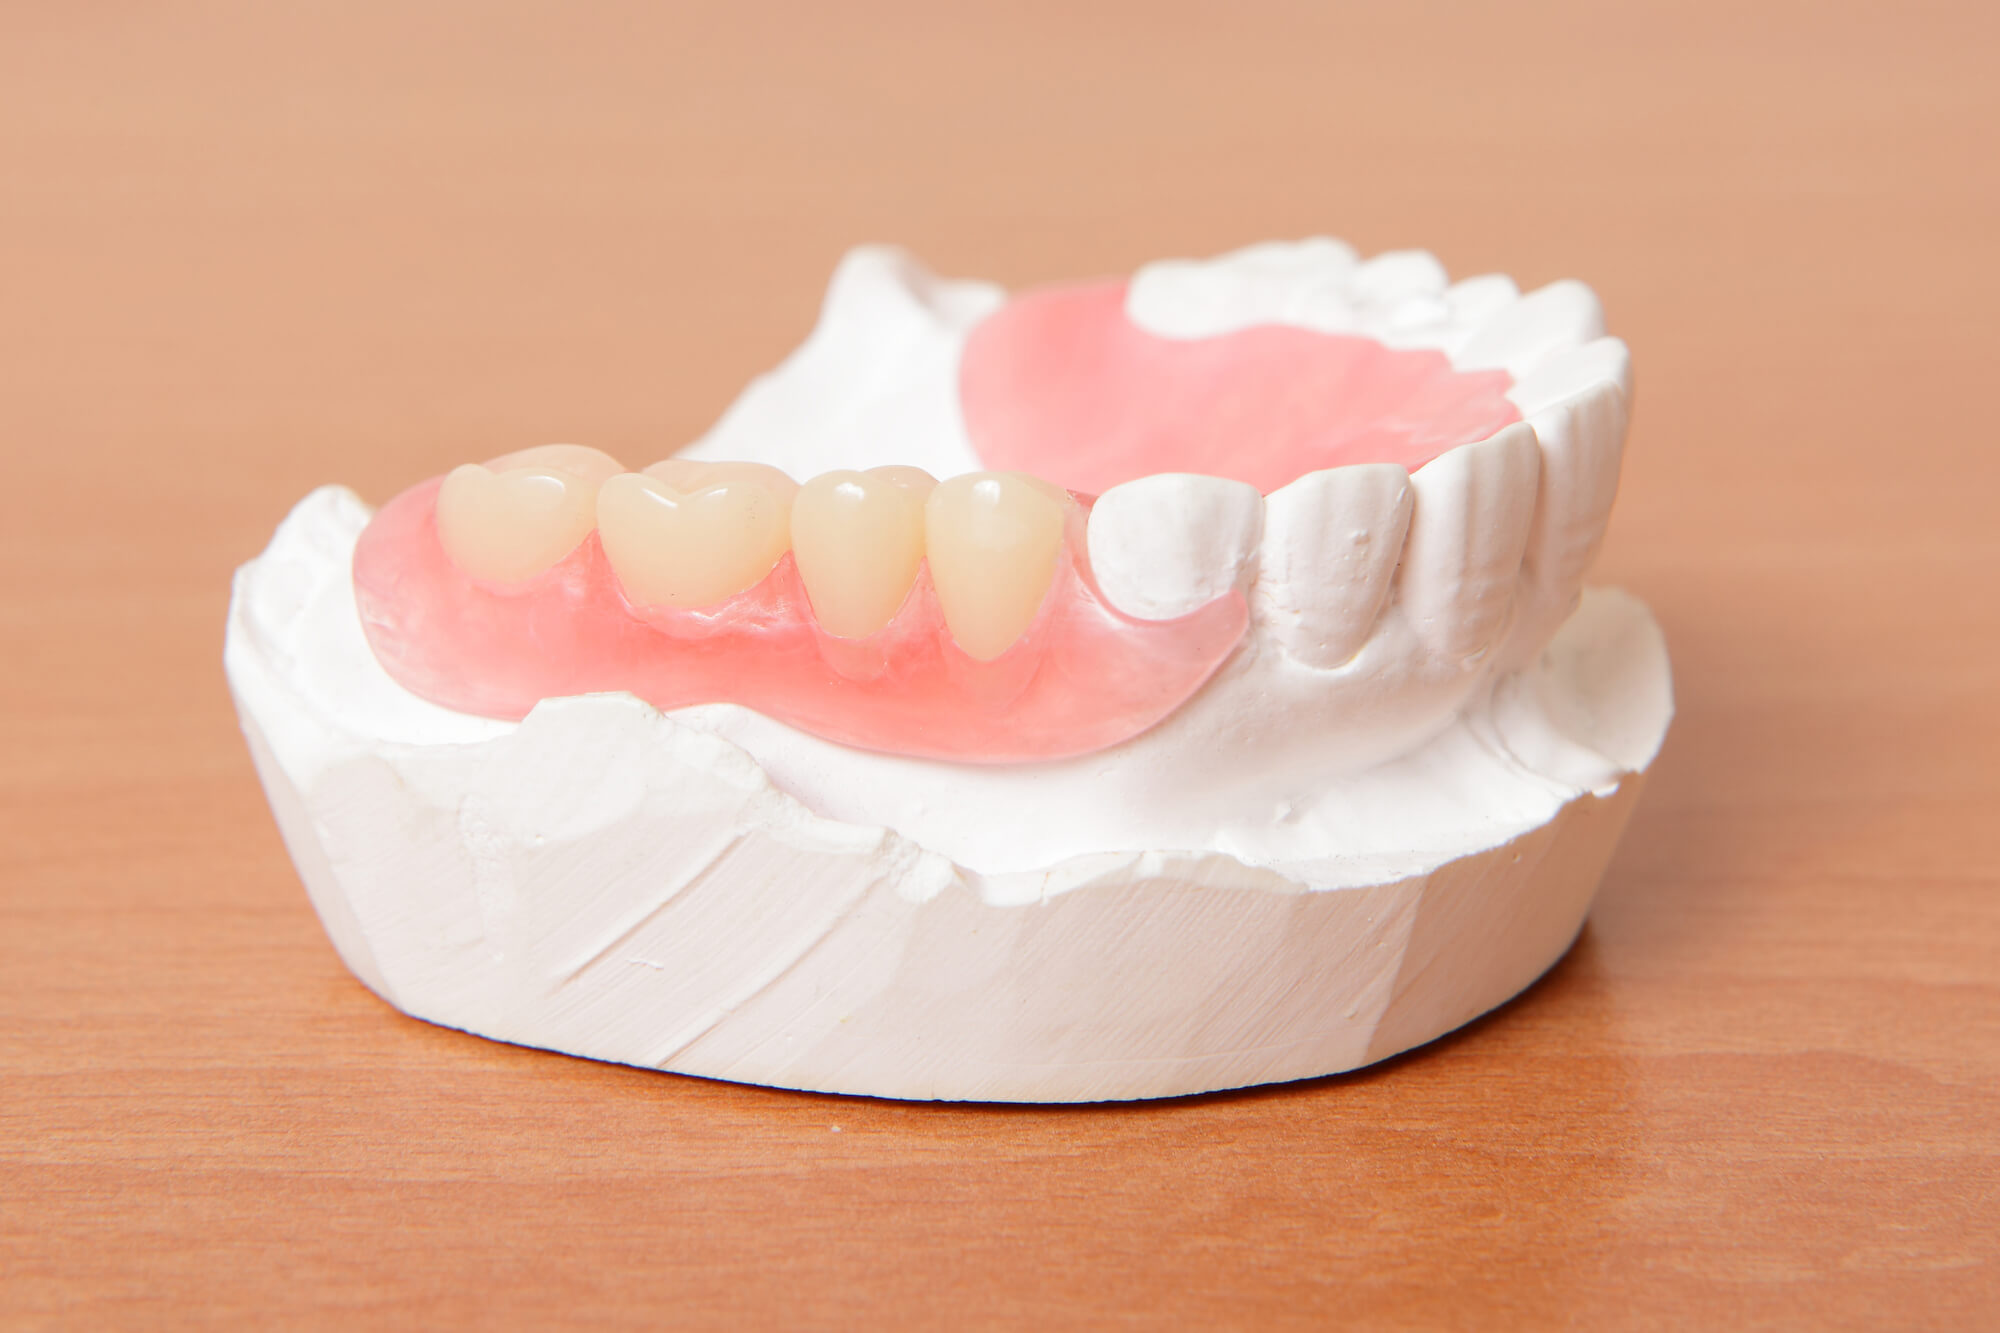 where are the best places to get dentures tamiami?